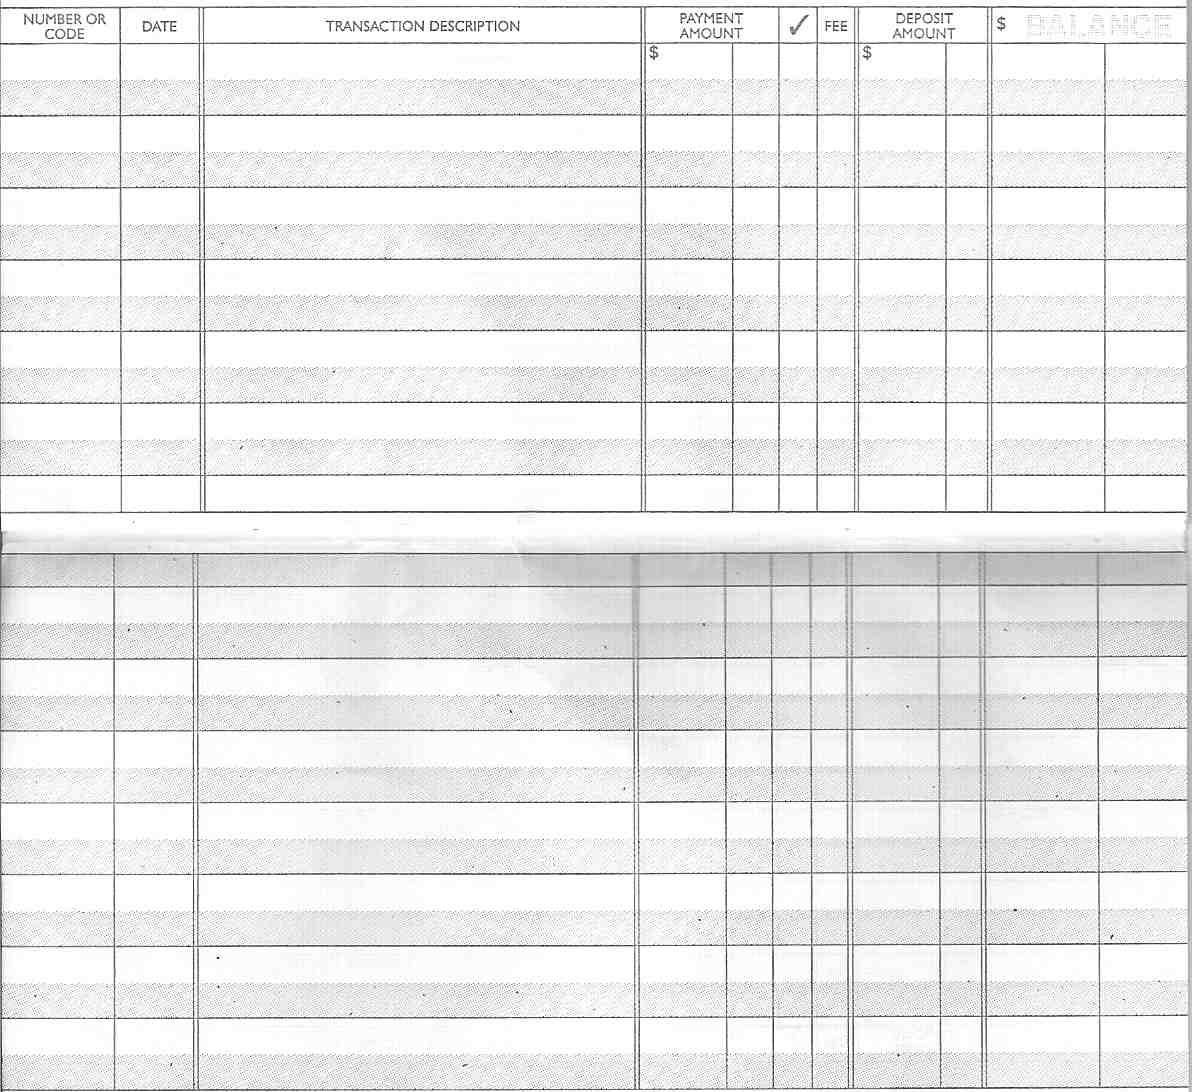 Blank checkbook register blank checkbook register page pdf blank checkbook register blank checkbook register page pdf fandeluxe Images